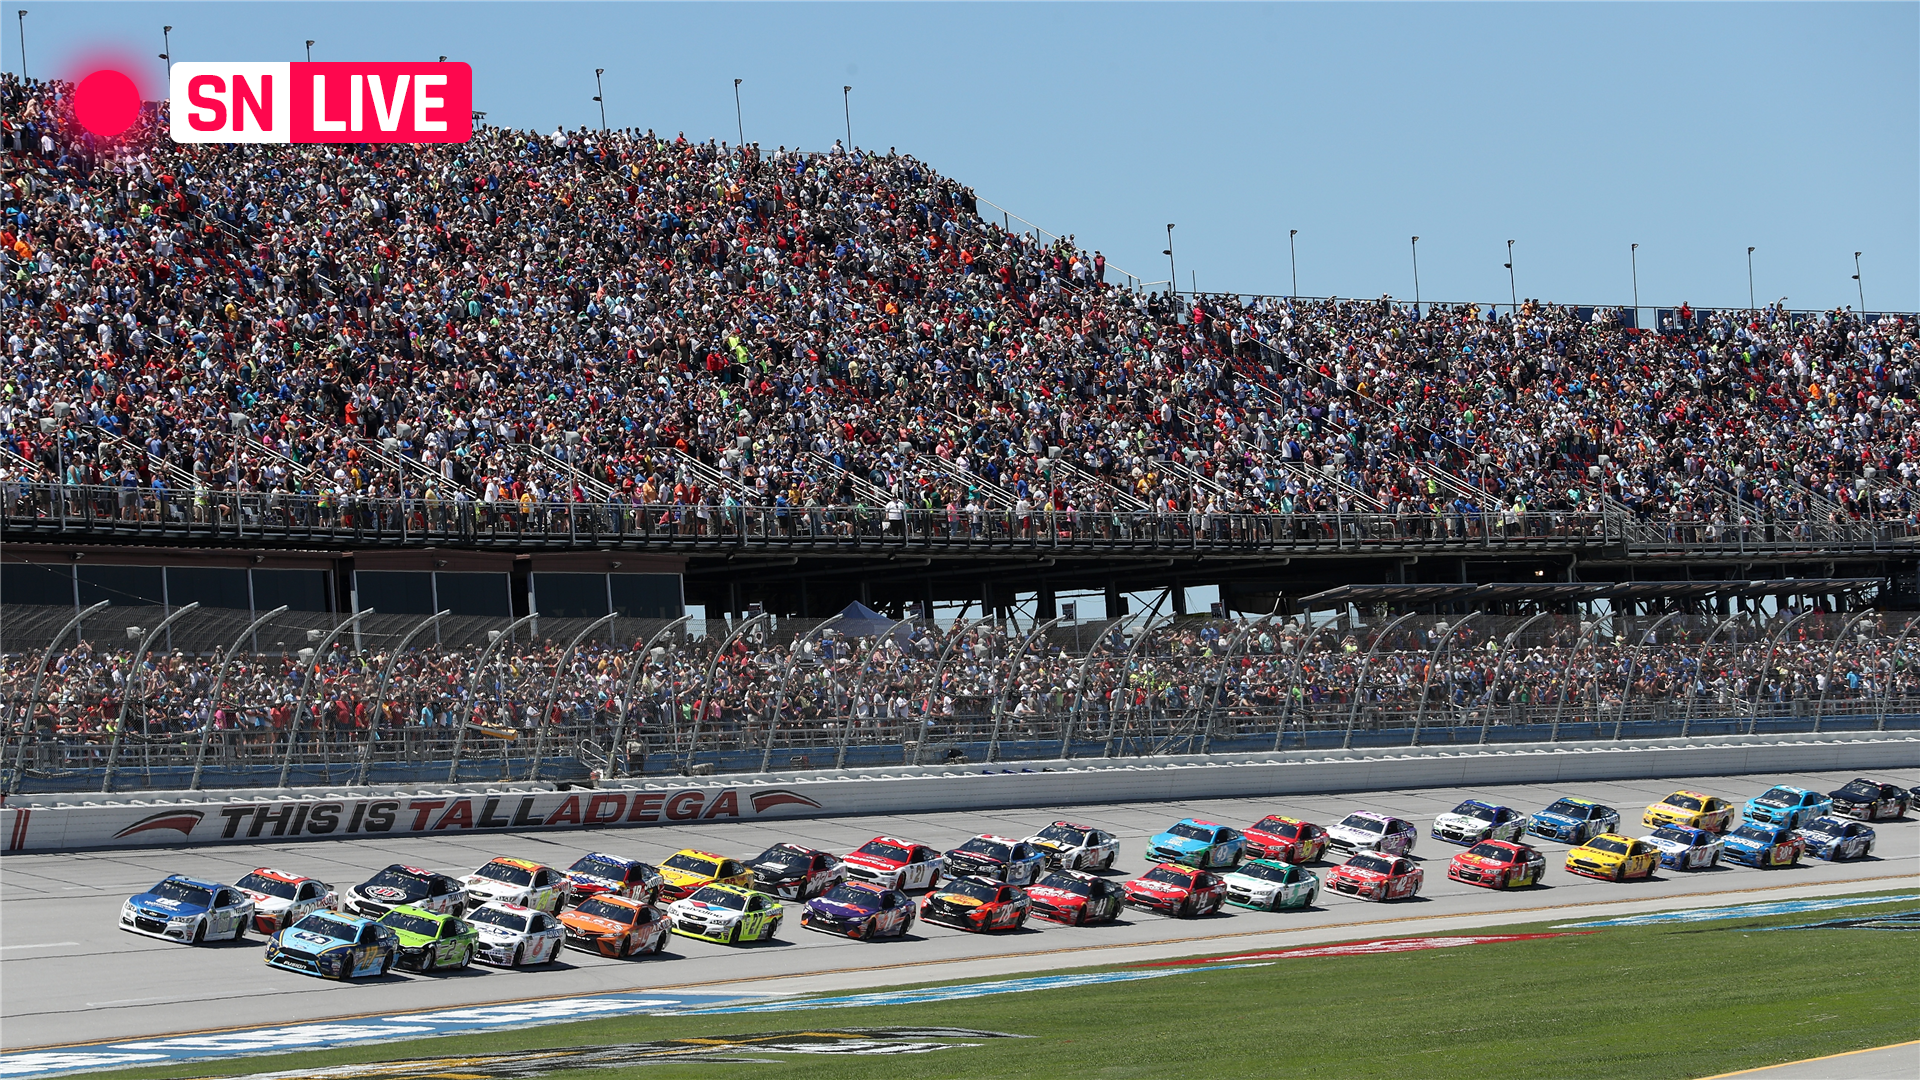 NASCAR at Talladega: Results, highlights from 1000Bulbs.com 500